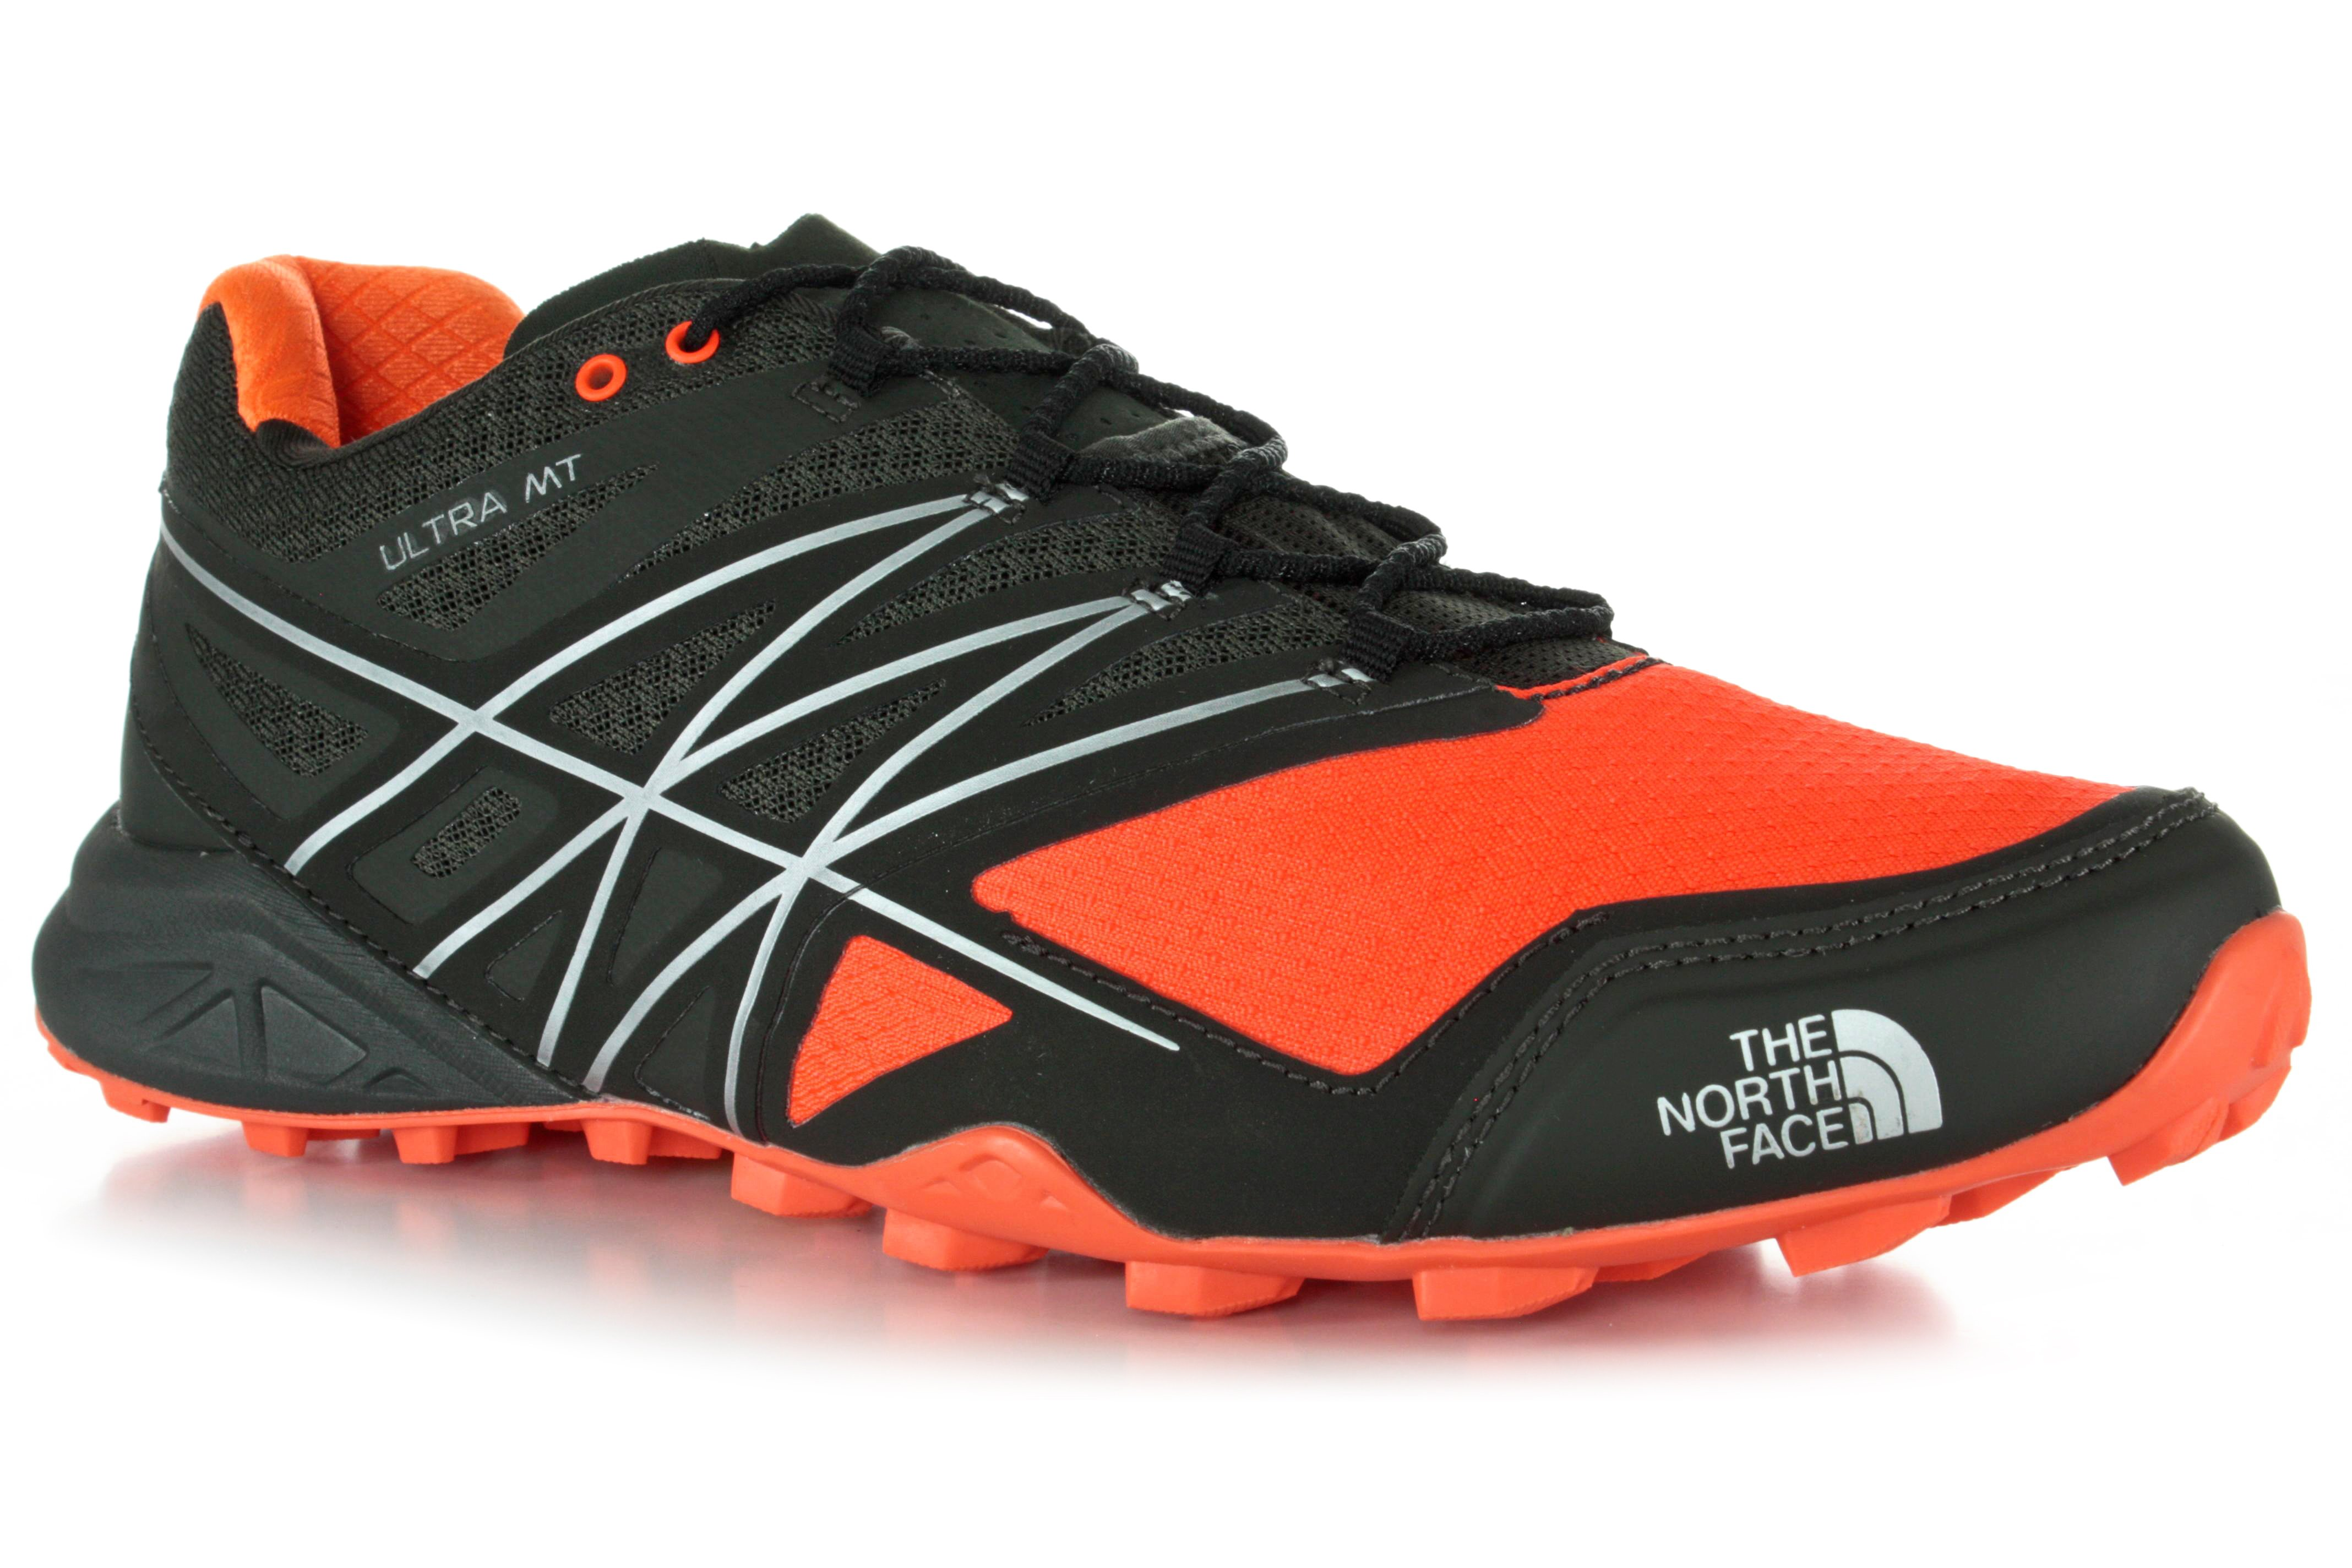 the-north-face-ultra-mt-m-chaussures-homme-78753-1-o